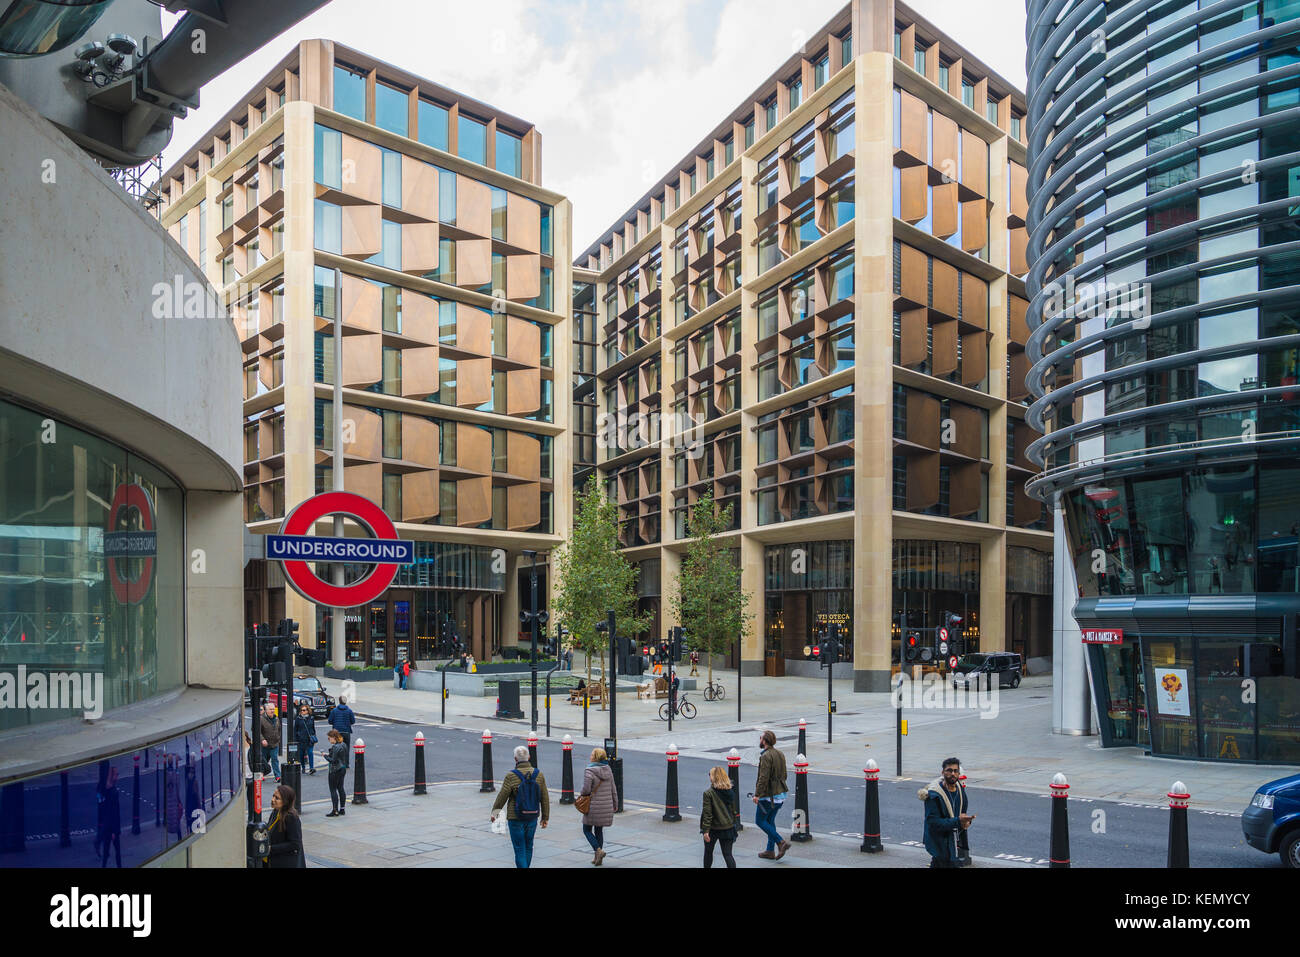 Bloomberg European headquarters, in the City of London, as seen from Cannon Street railway station - Stock Image